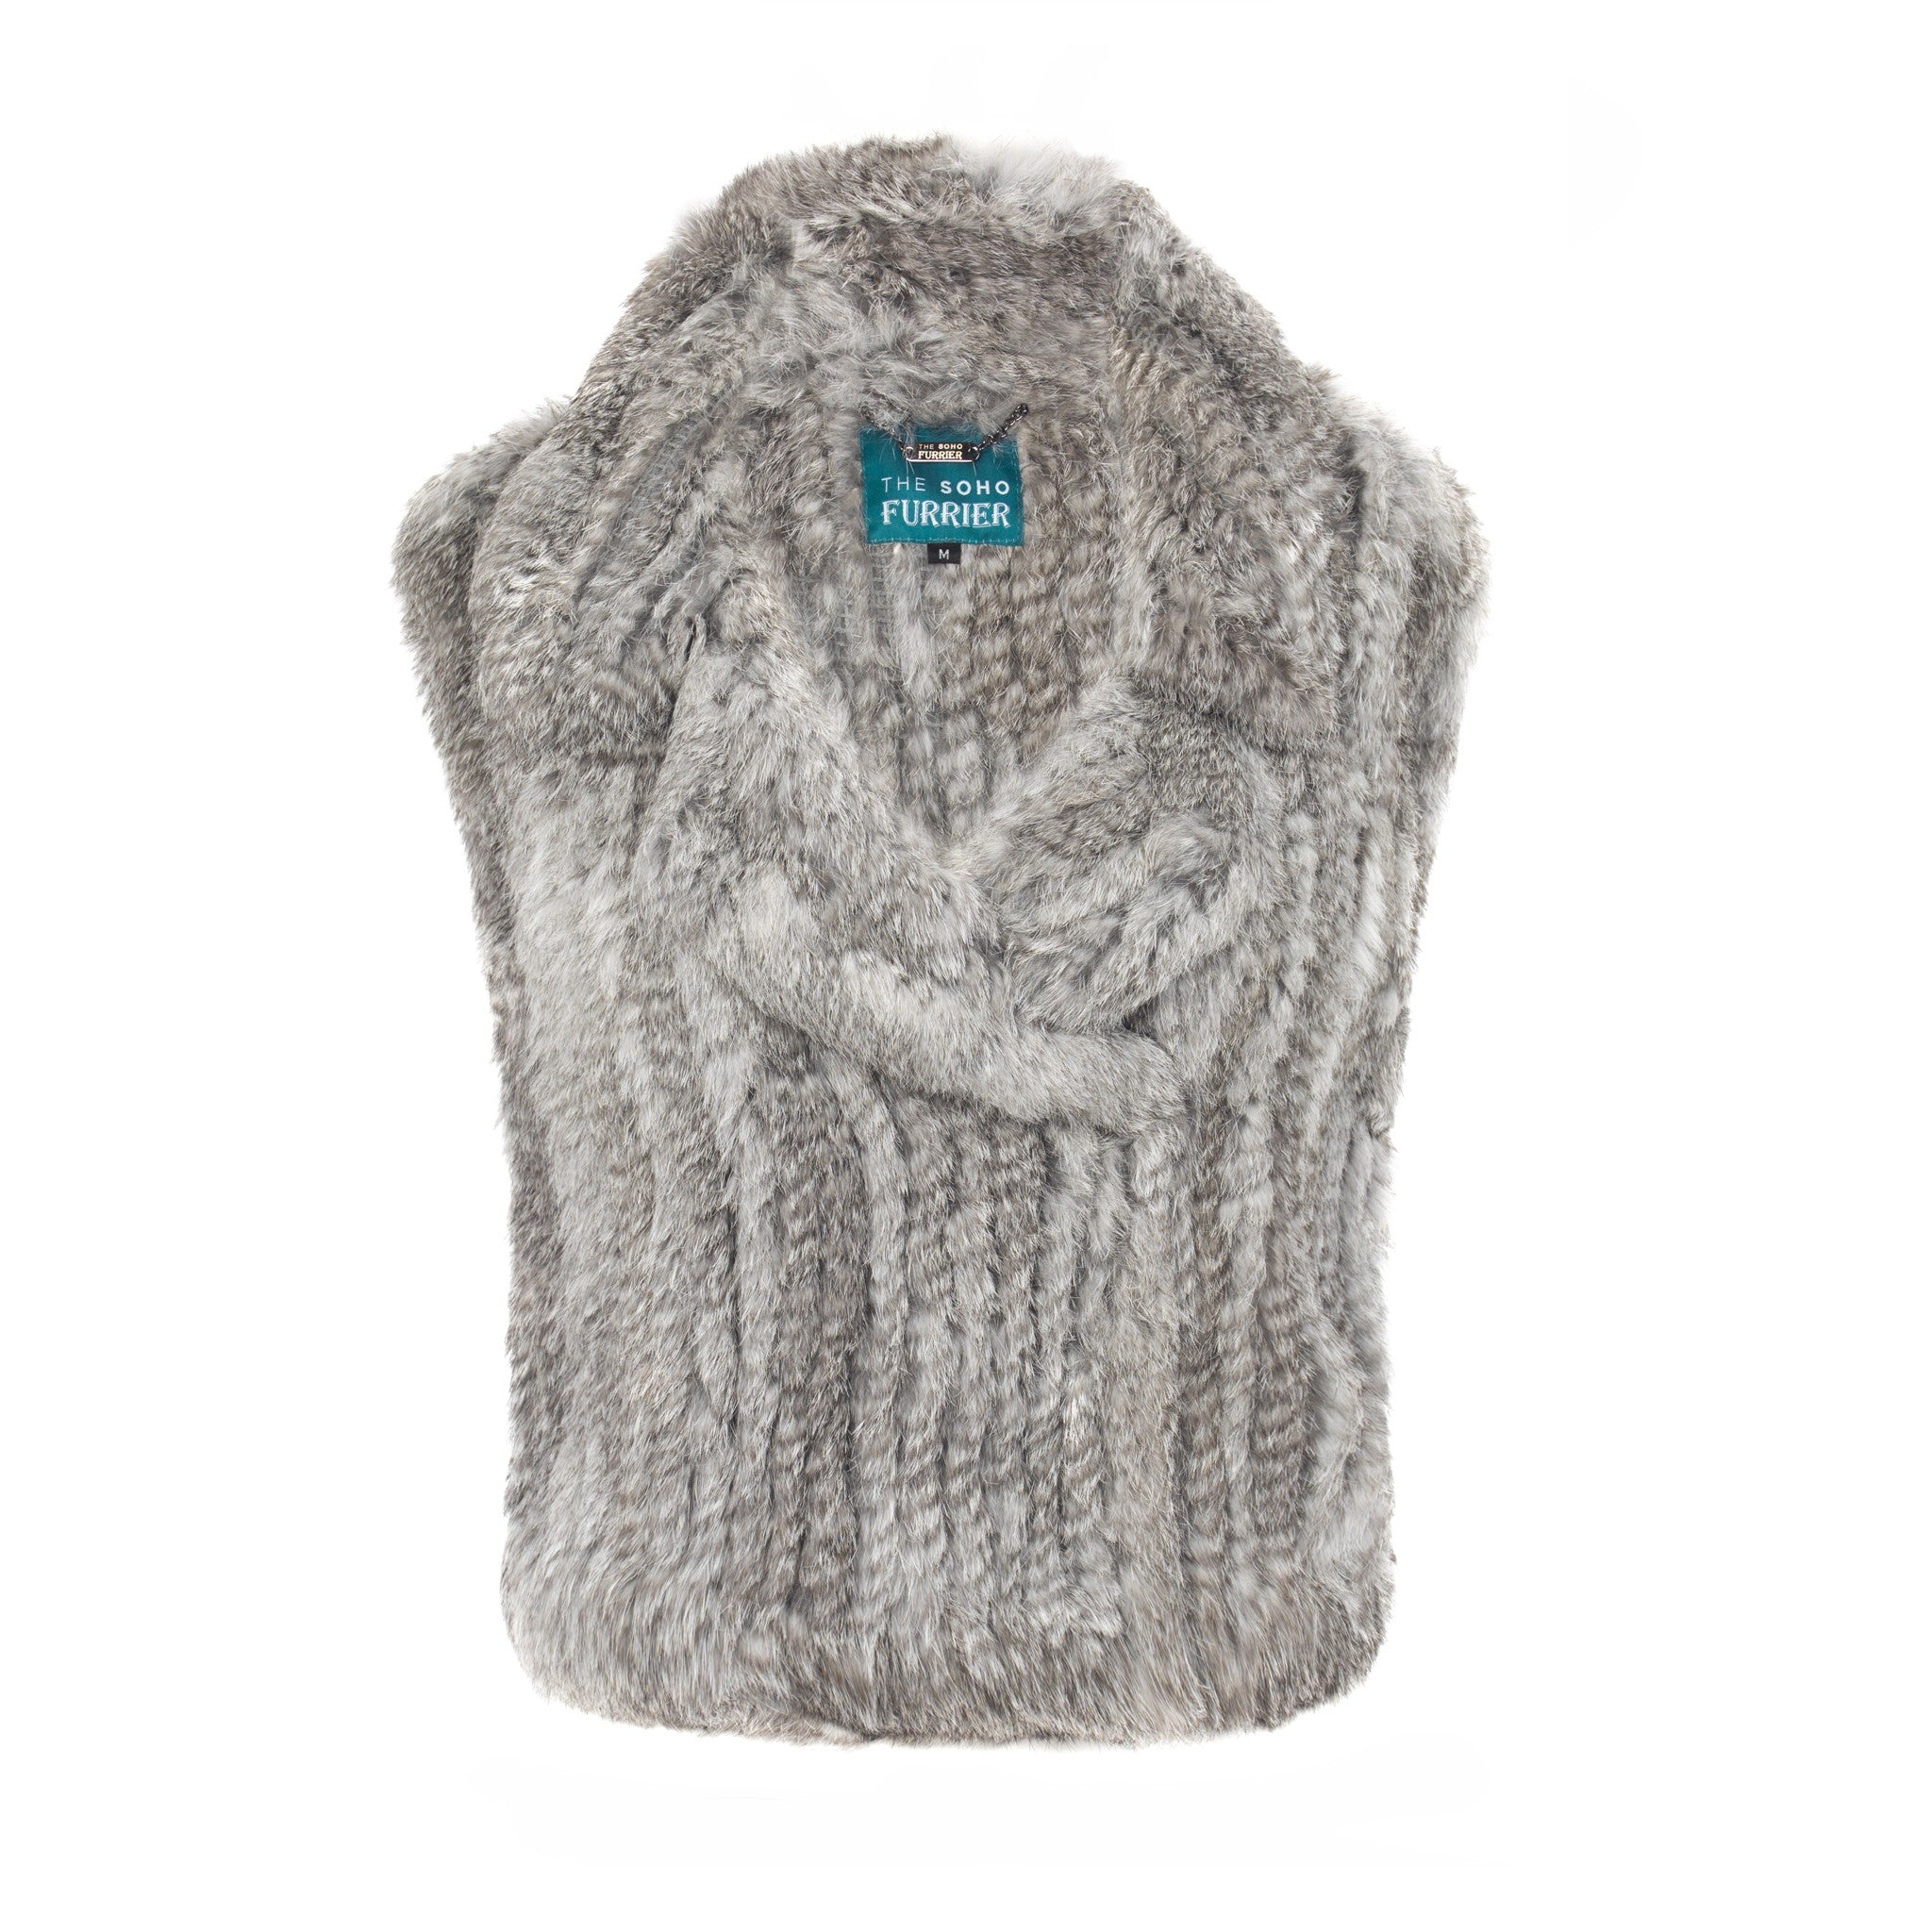 Argyll Biker Gilet - The Soho Furrier  - 3